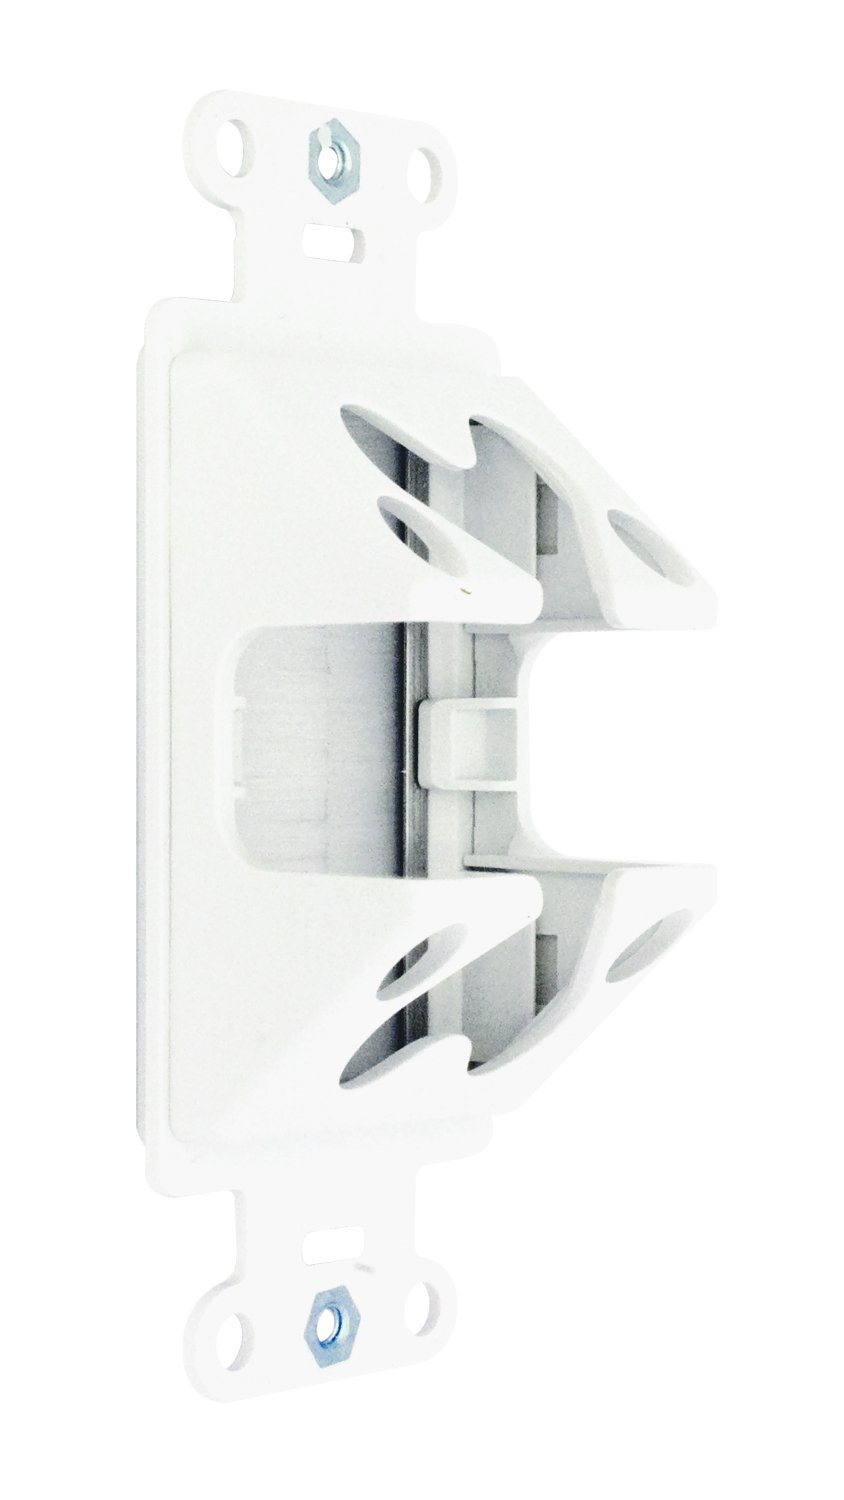 Legrand On Q Wp1014whv1 Cable Access Strap And Wall Plate White Onq Coax Wiring Plates Connectors Electronics Tibs